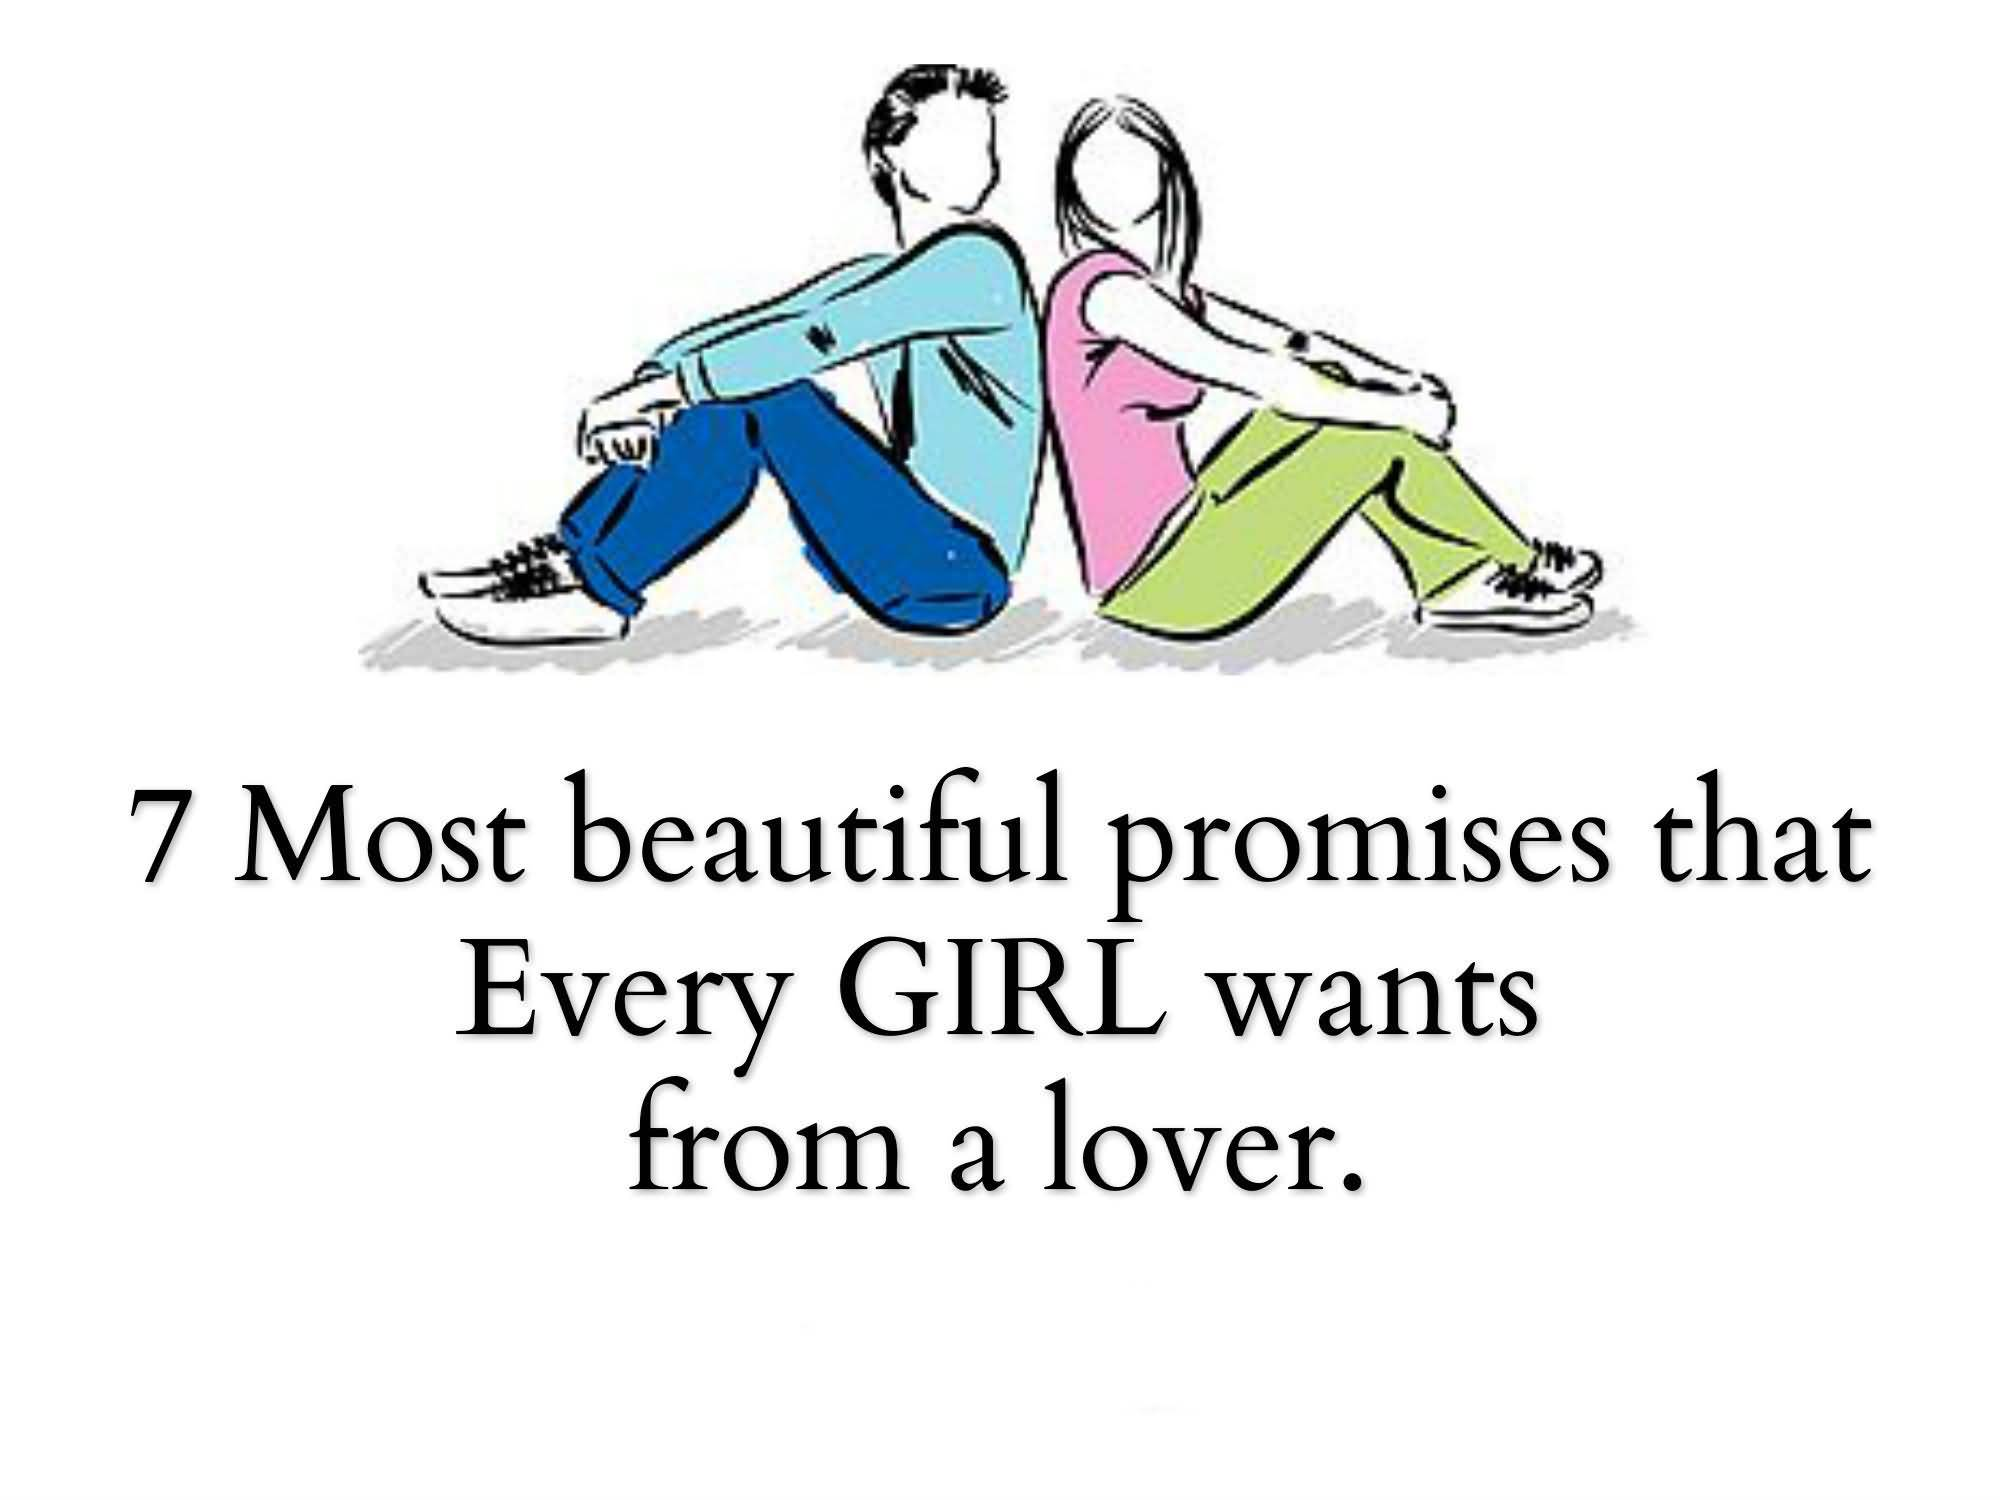 7 MOST BEAUTIFUL PROMISES THAT EVERY GIRL WANTS FROM A LOVER